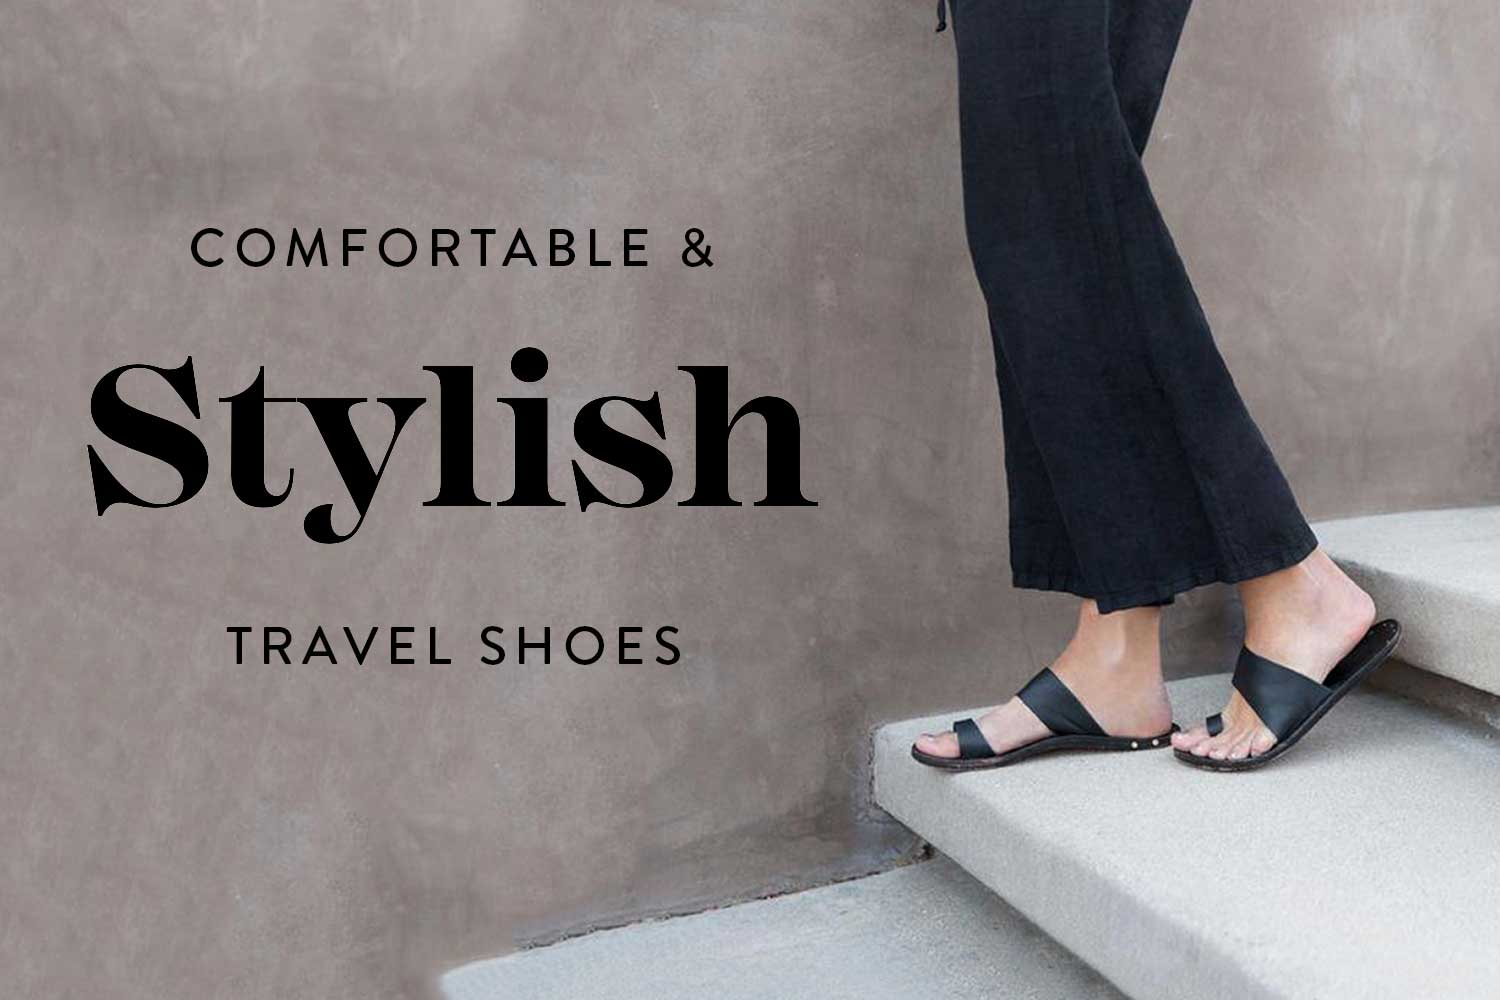 Best Travel Shoes 2019 (Comfortable + Stylish!)